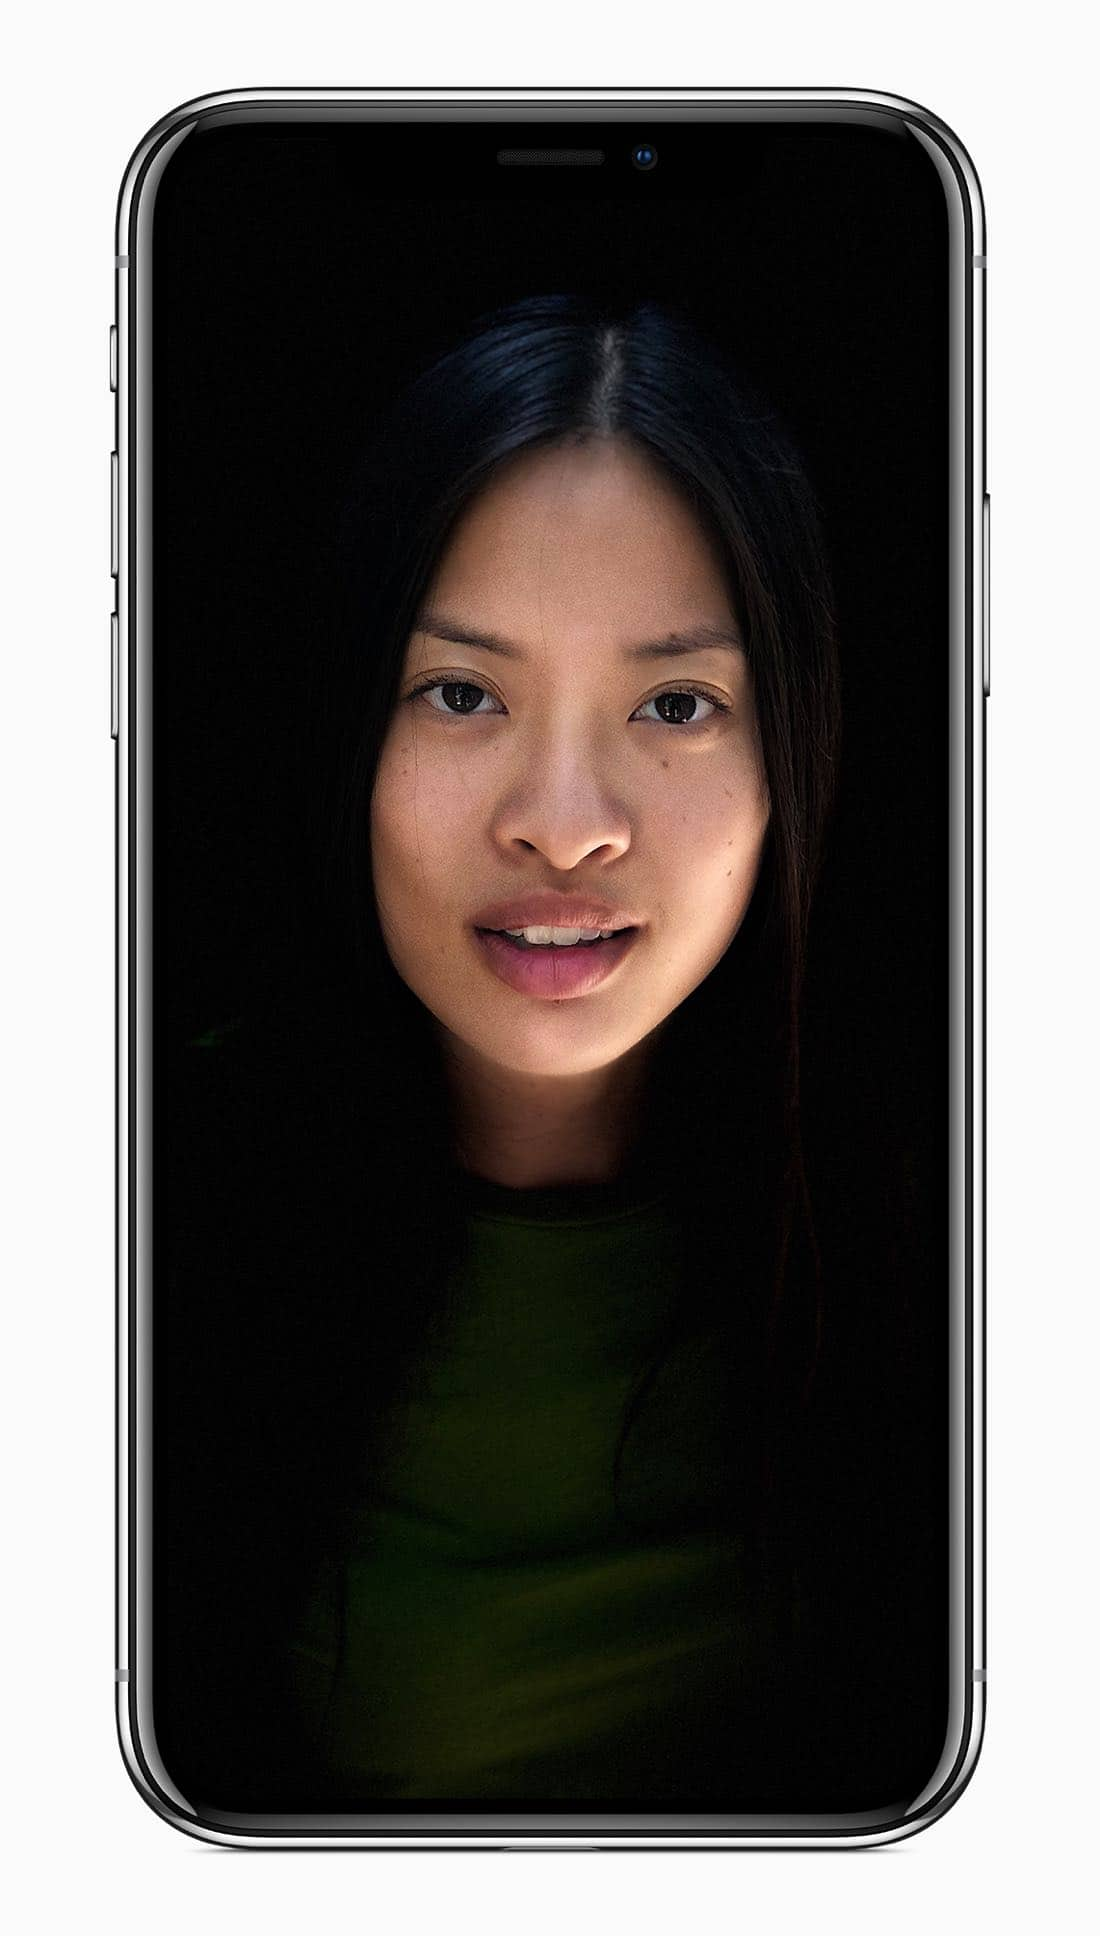 iphonex_camera_front_lighting_four